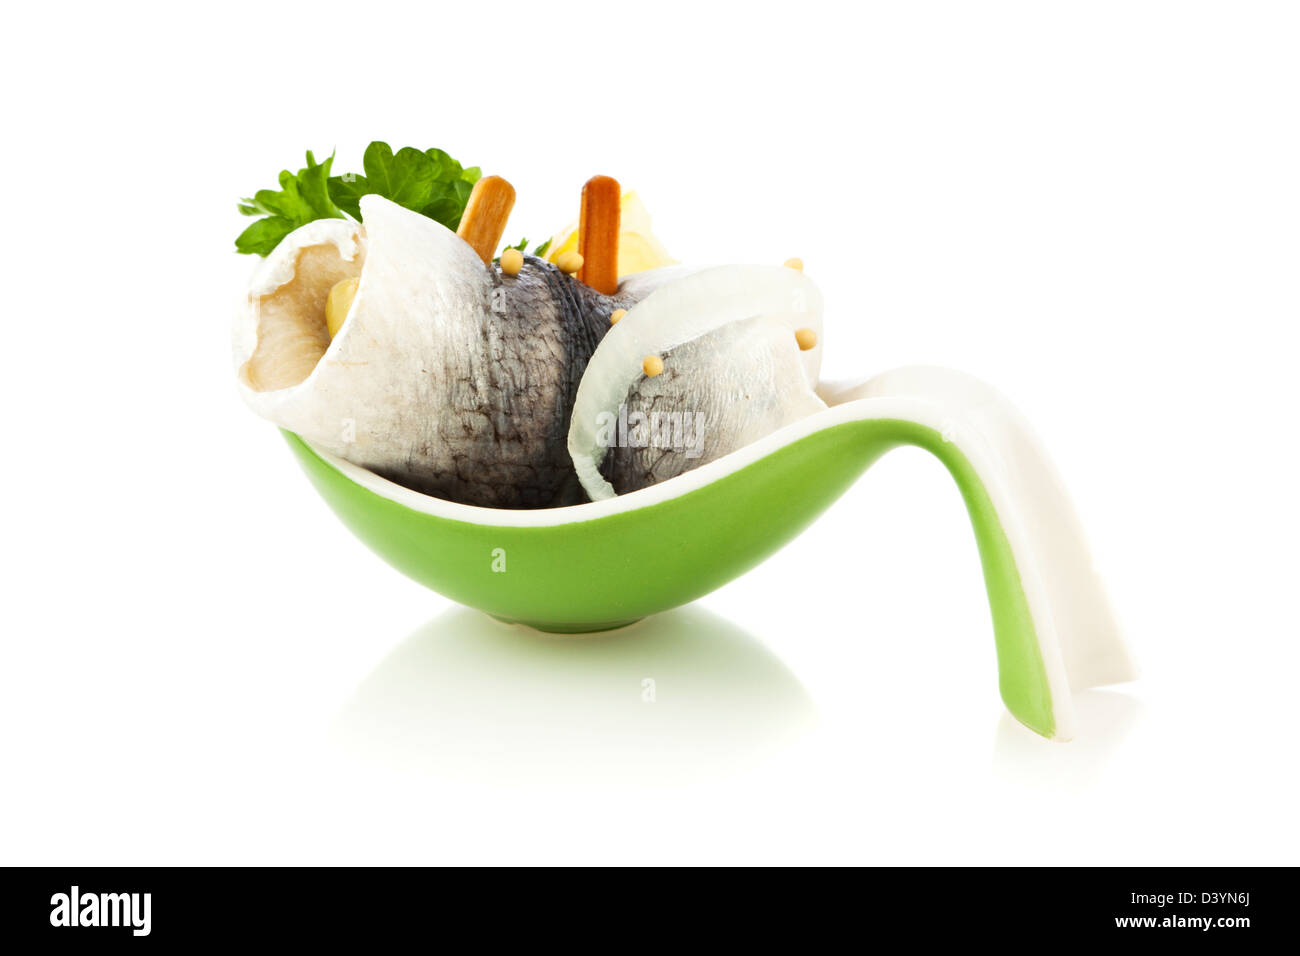 German Rollmops  - kipper wrapped around pickled cucumber - on serving spoon isolated on white background - Stock Image